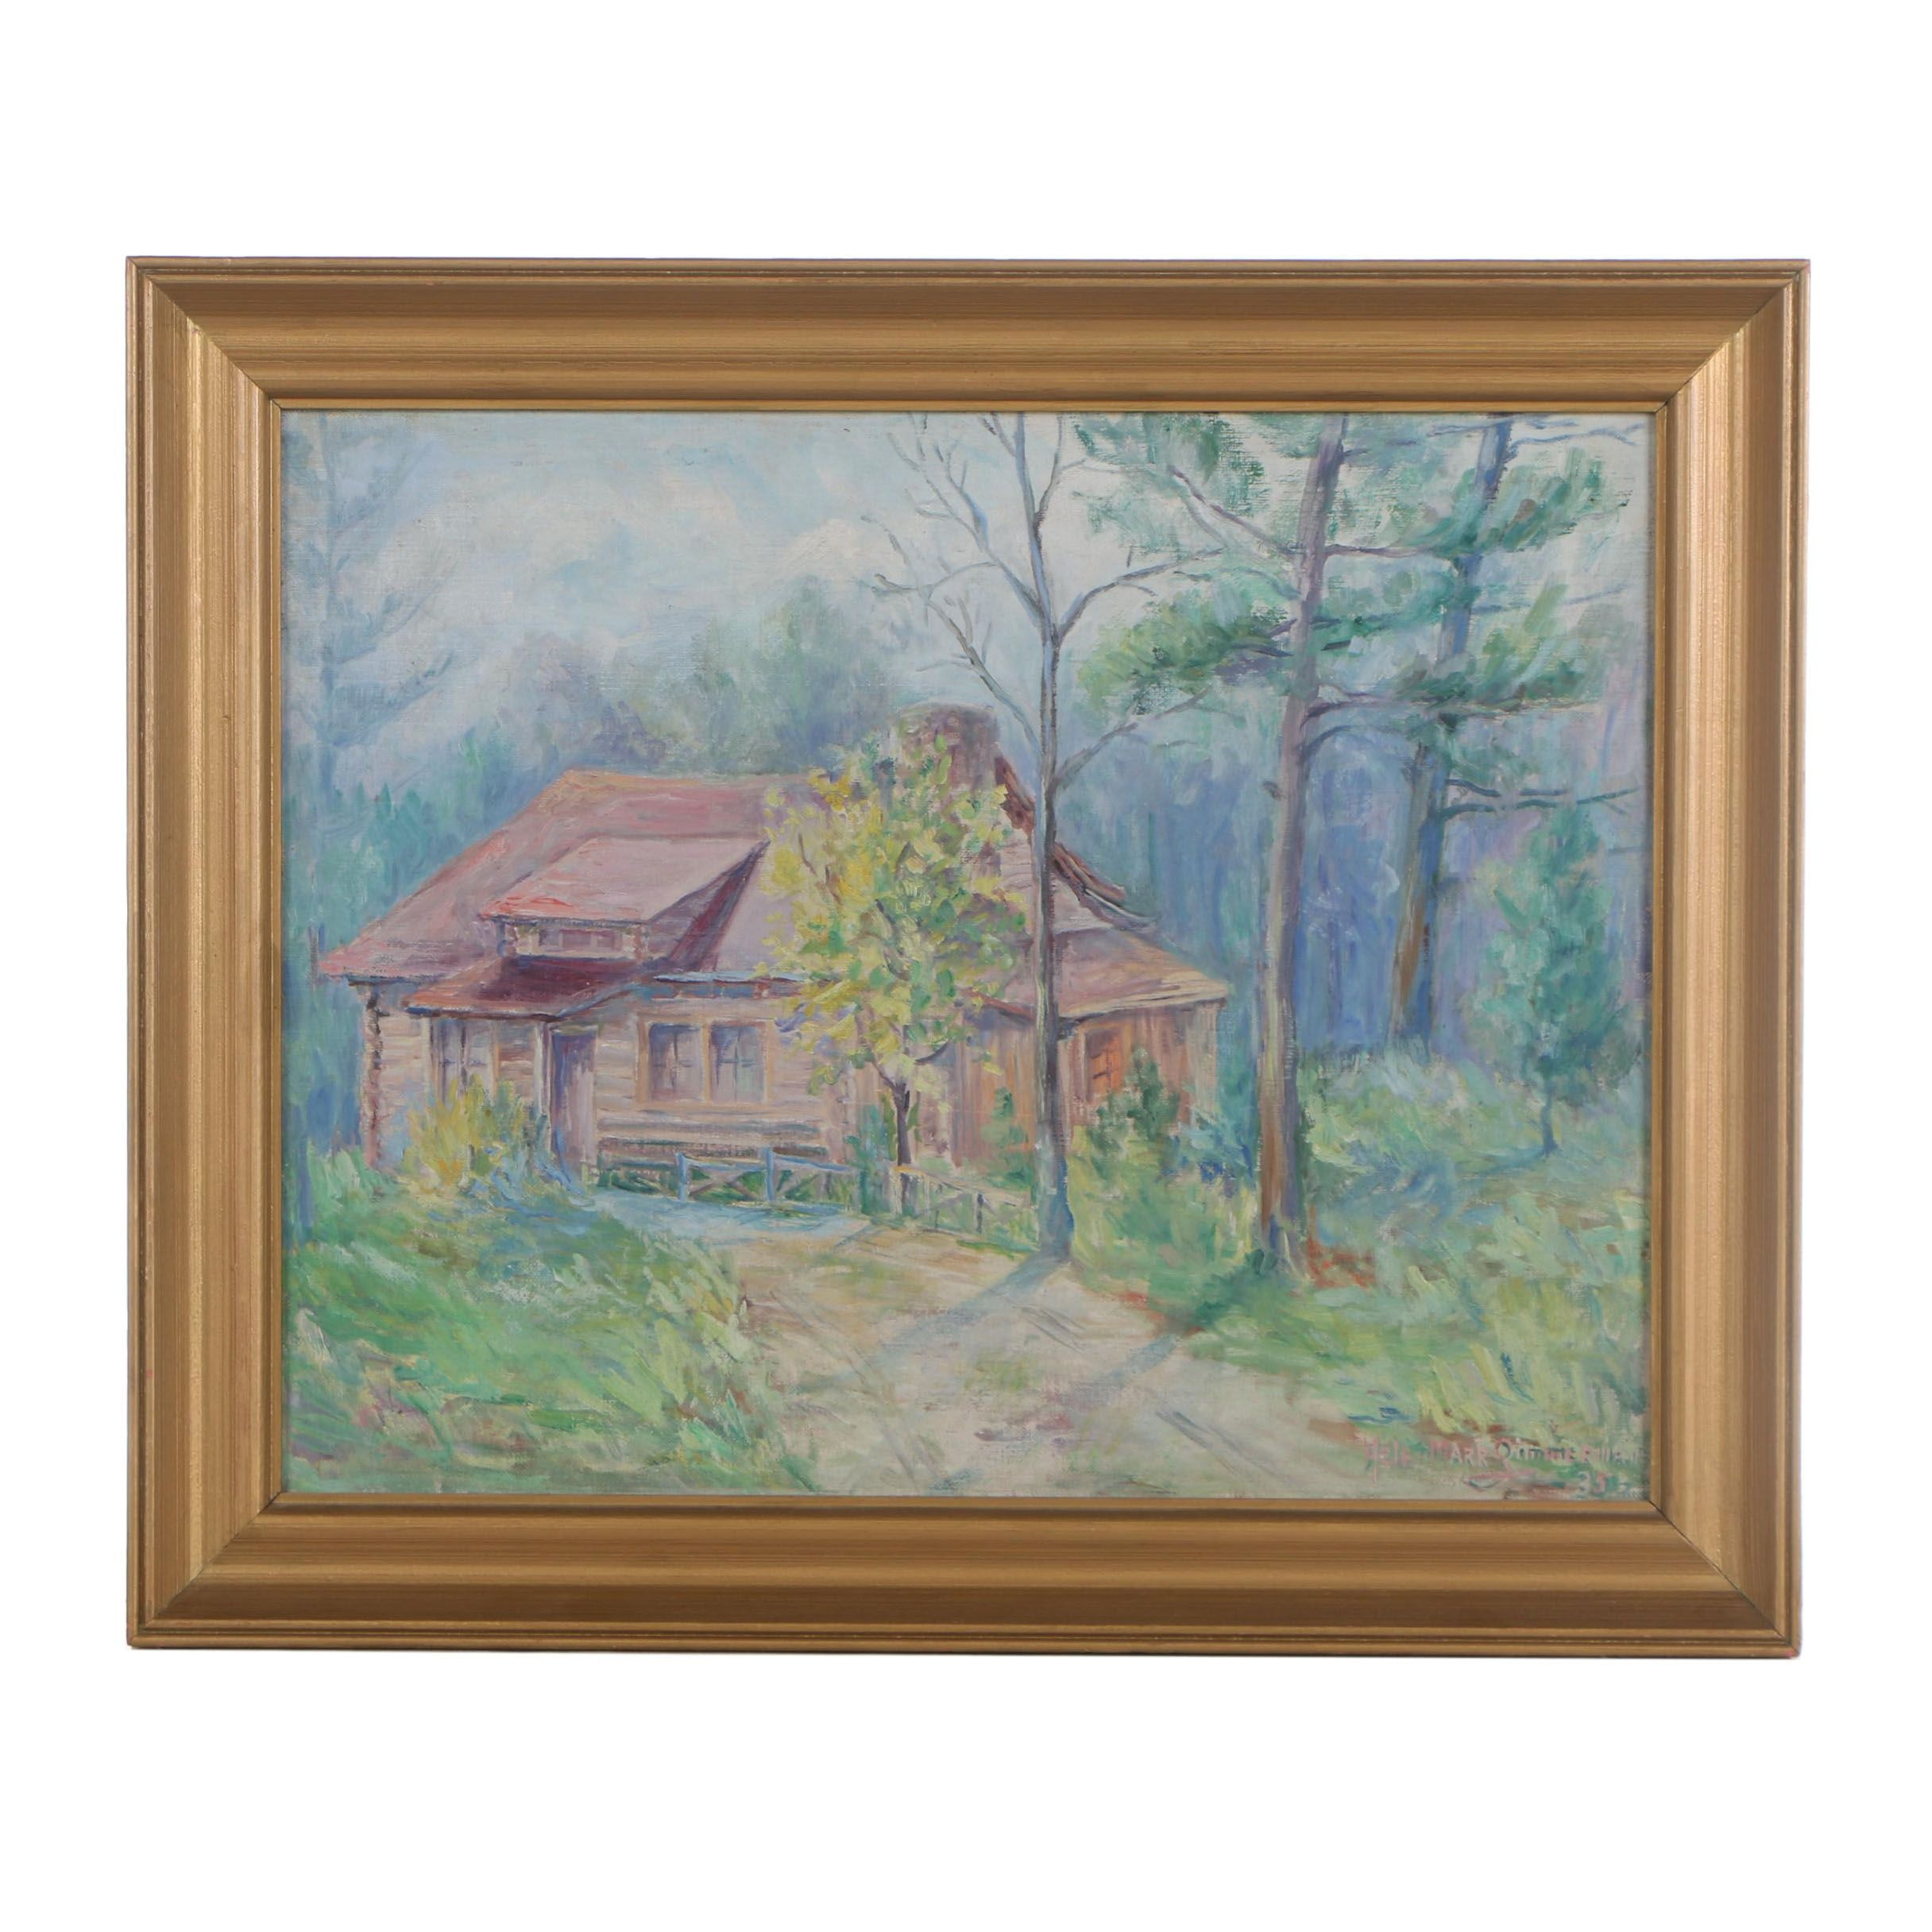 Helen Marr Zimmerman 1935 Oil Painting